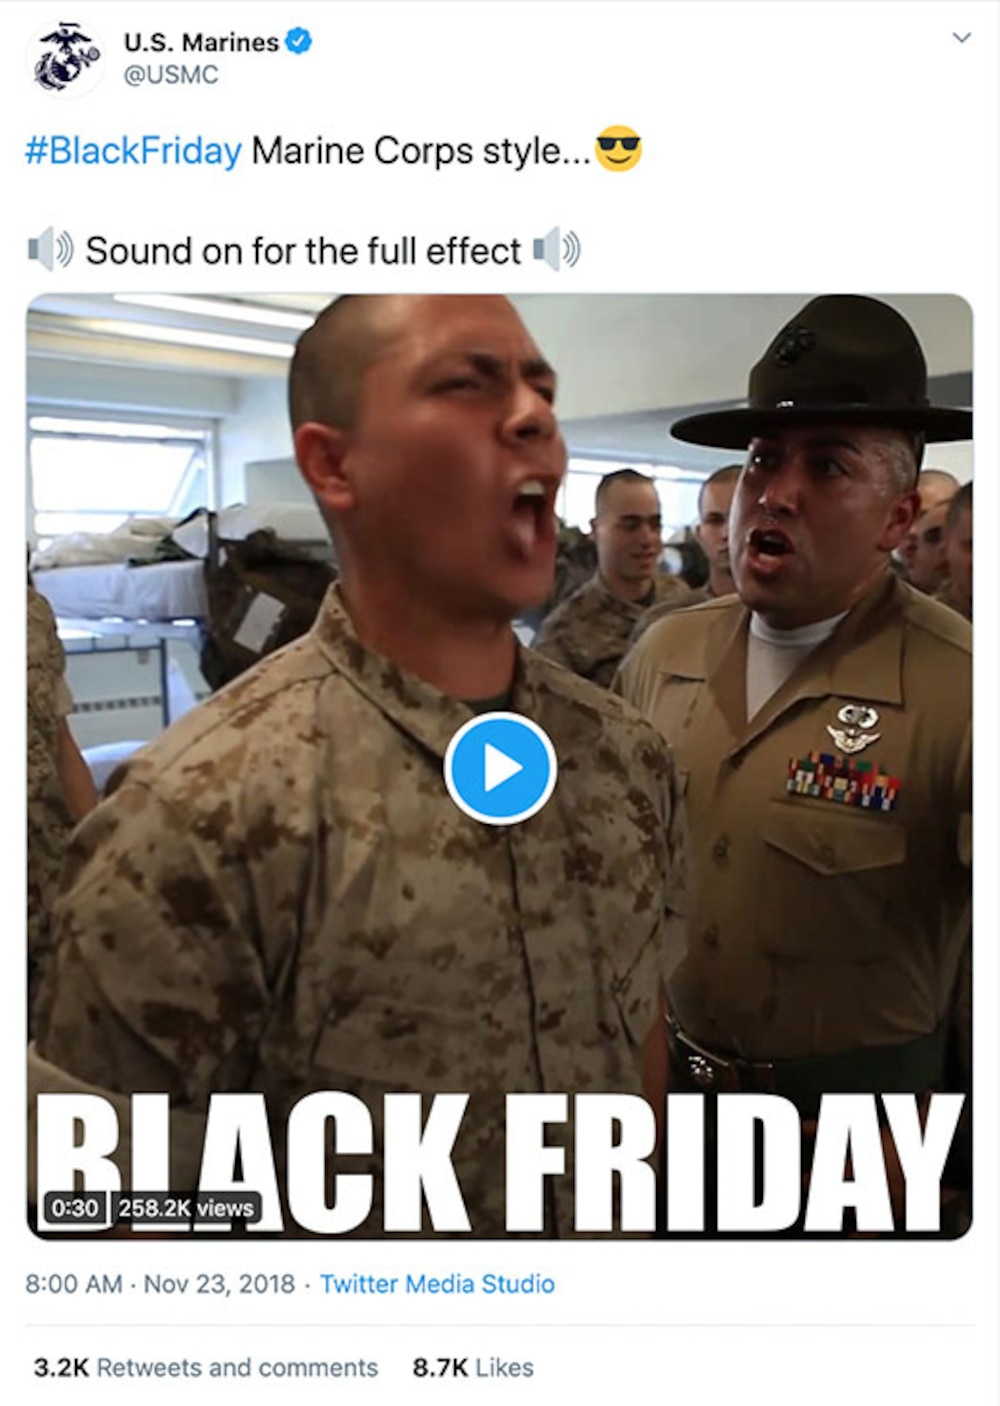 Twitter post from USMC, Nov 23, 2018, promoting a video of Marine Black Friday #blackfriday Marine Corps style, Sound on for full effect